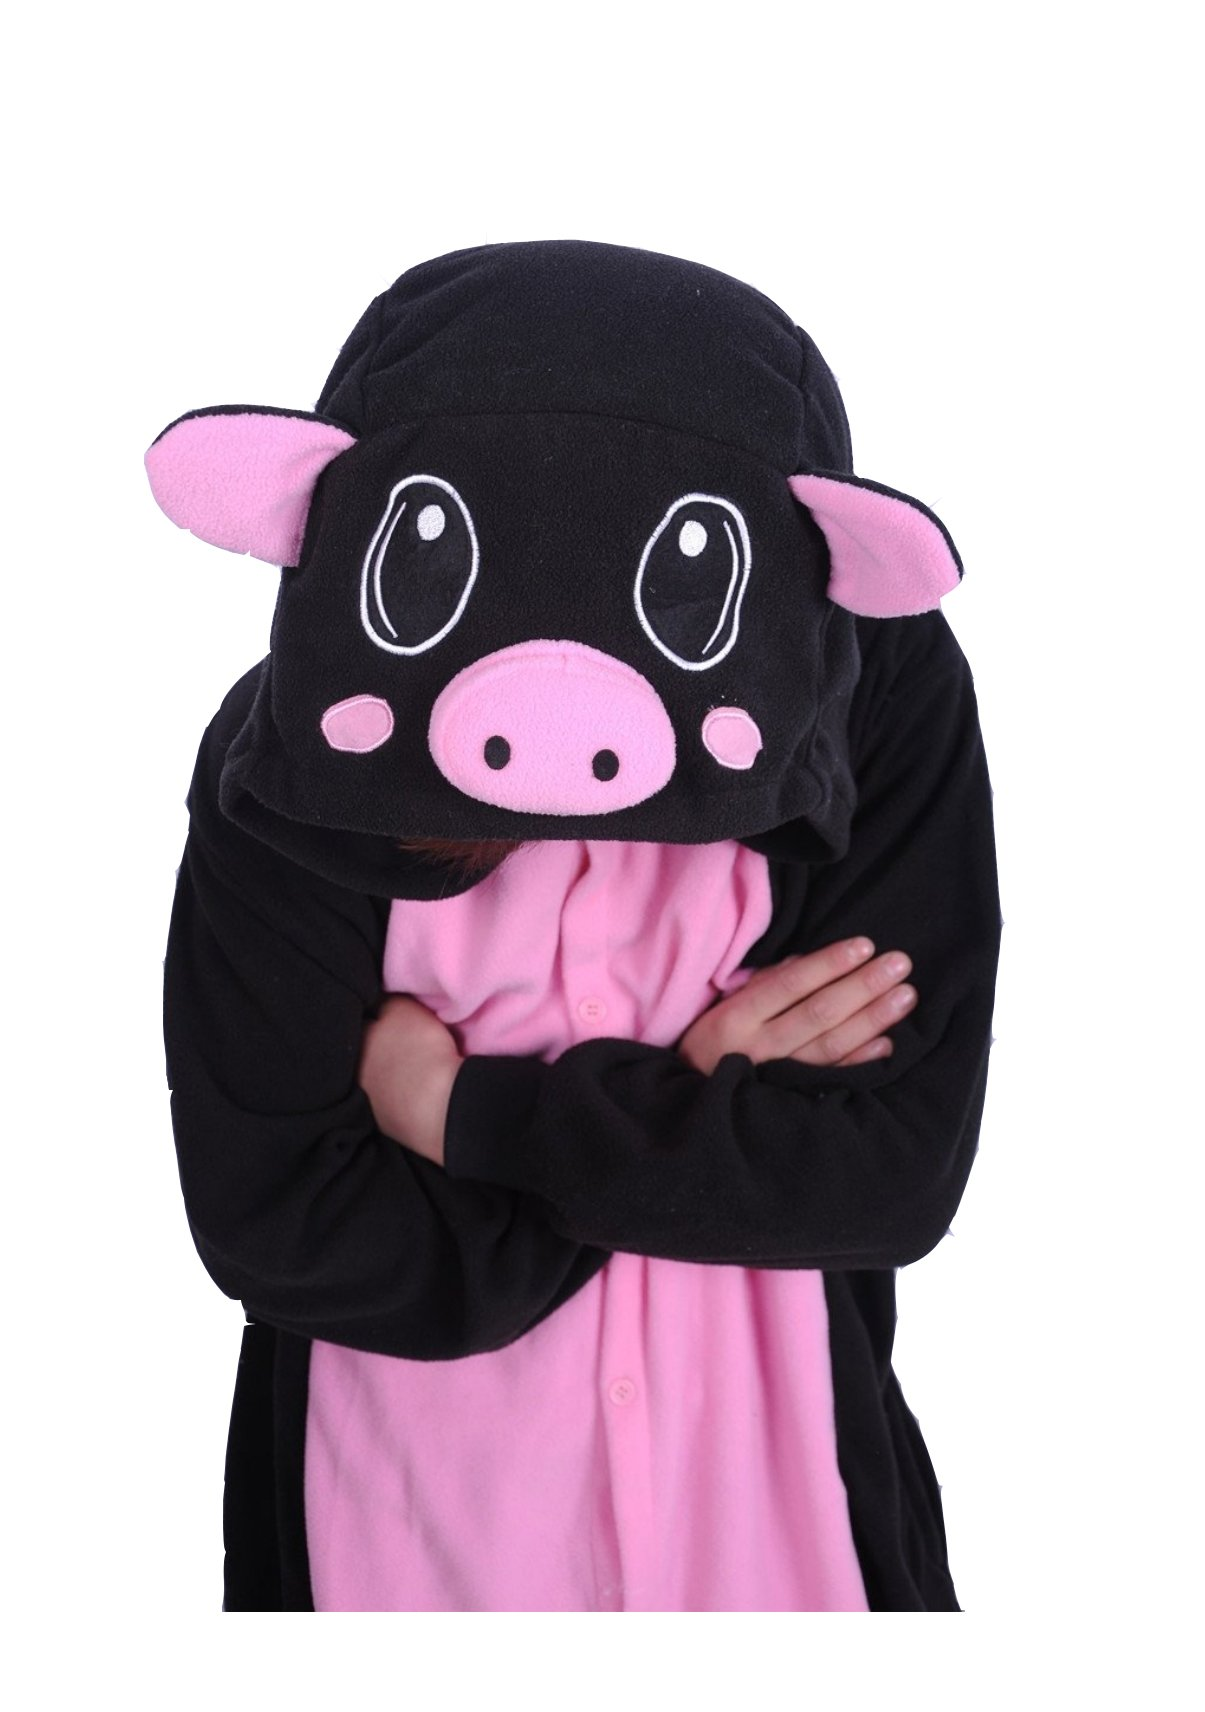 Adult Animal Lovely Black Pig Pajamas Sleepsuit Sleepwear Kigurumi